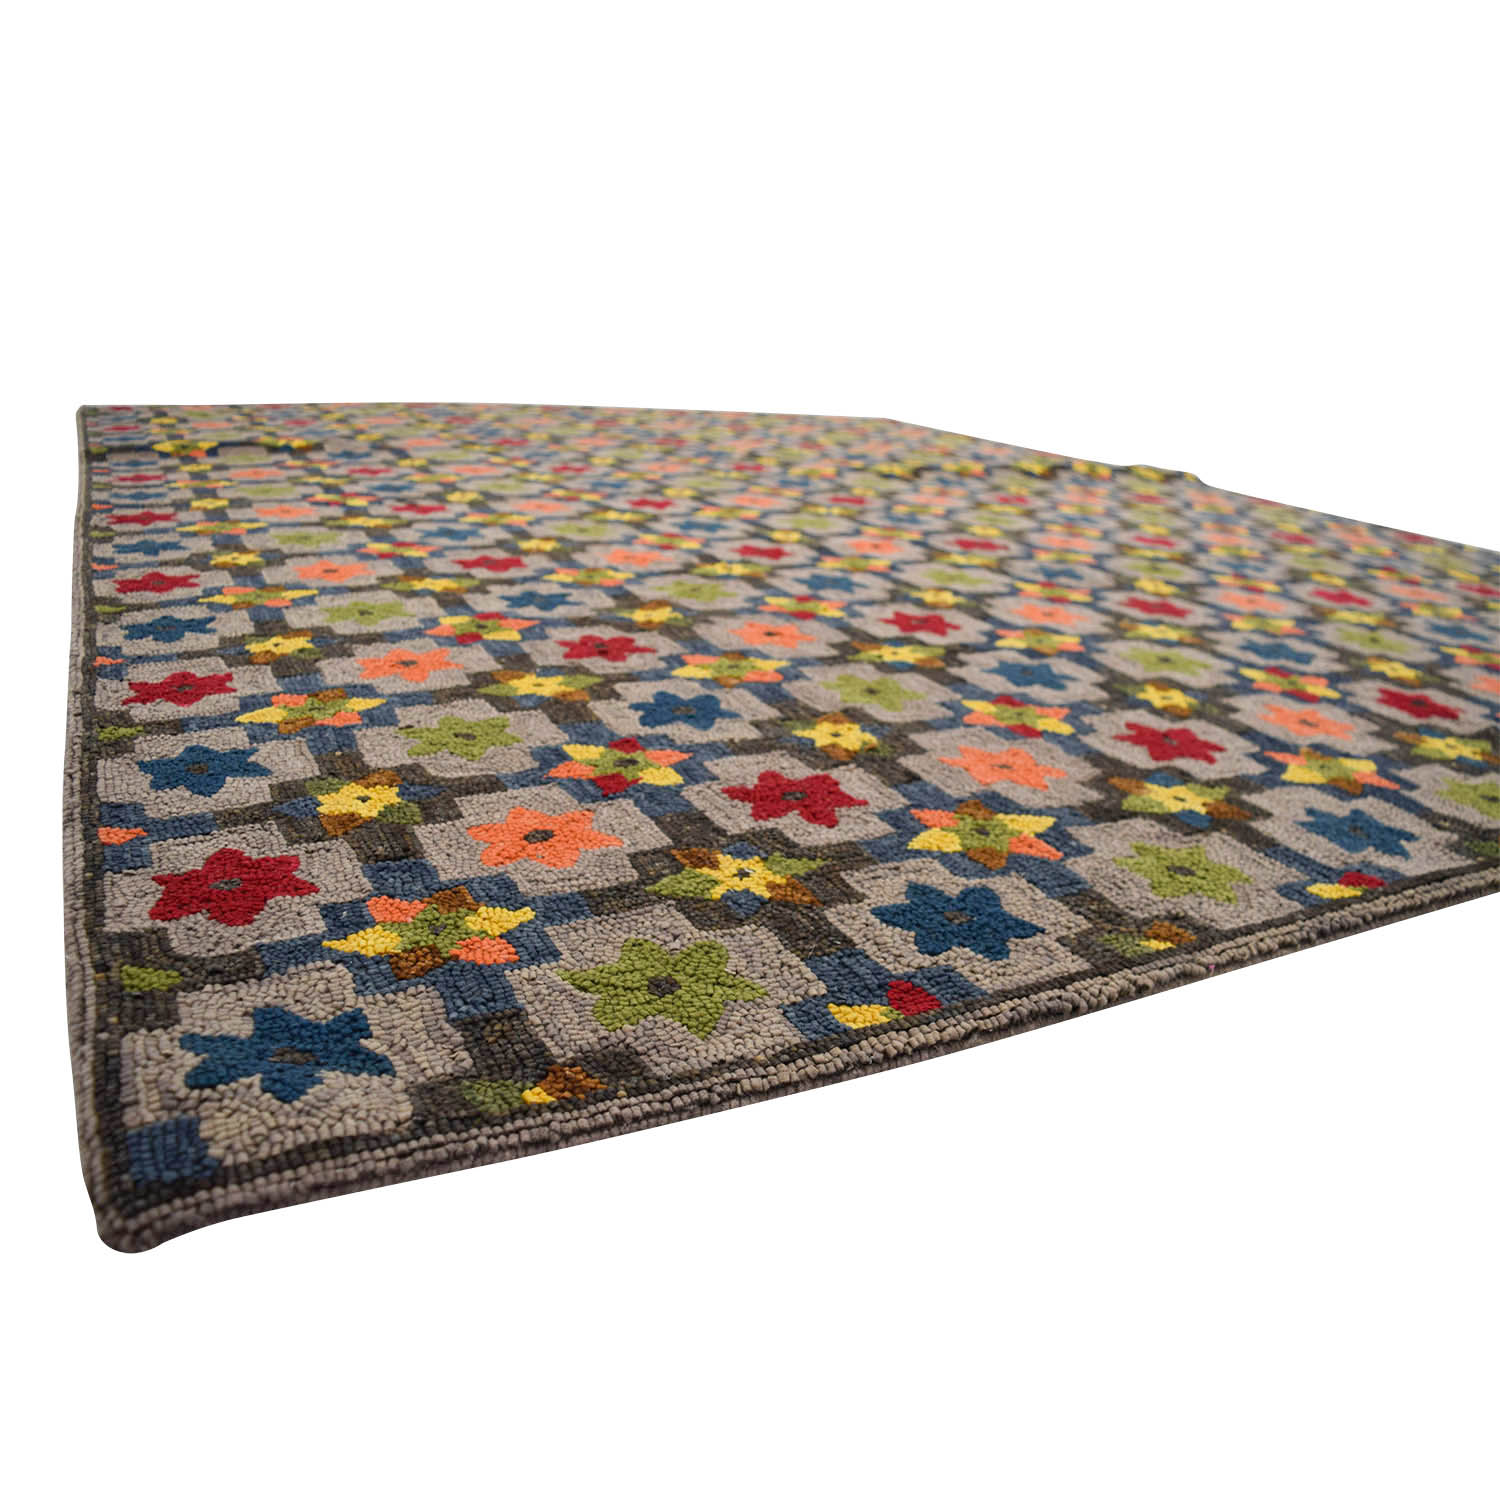 Obeetee Obeetee Hand Hooked Multi Colored Floral Rug discount